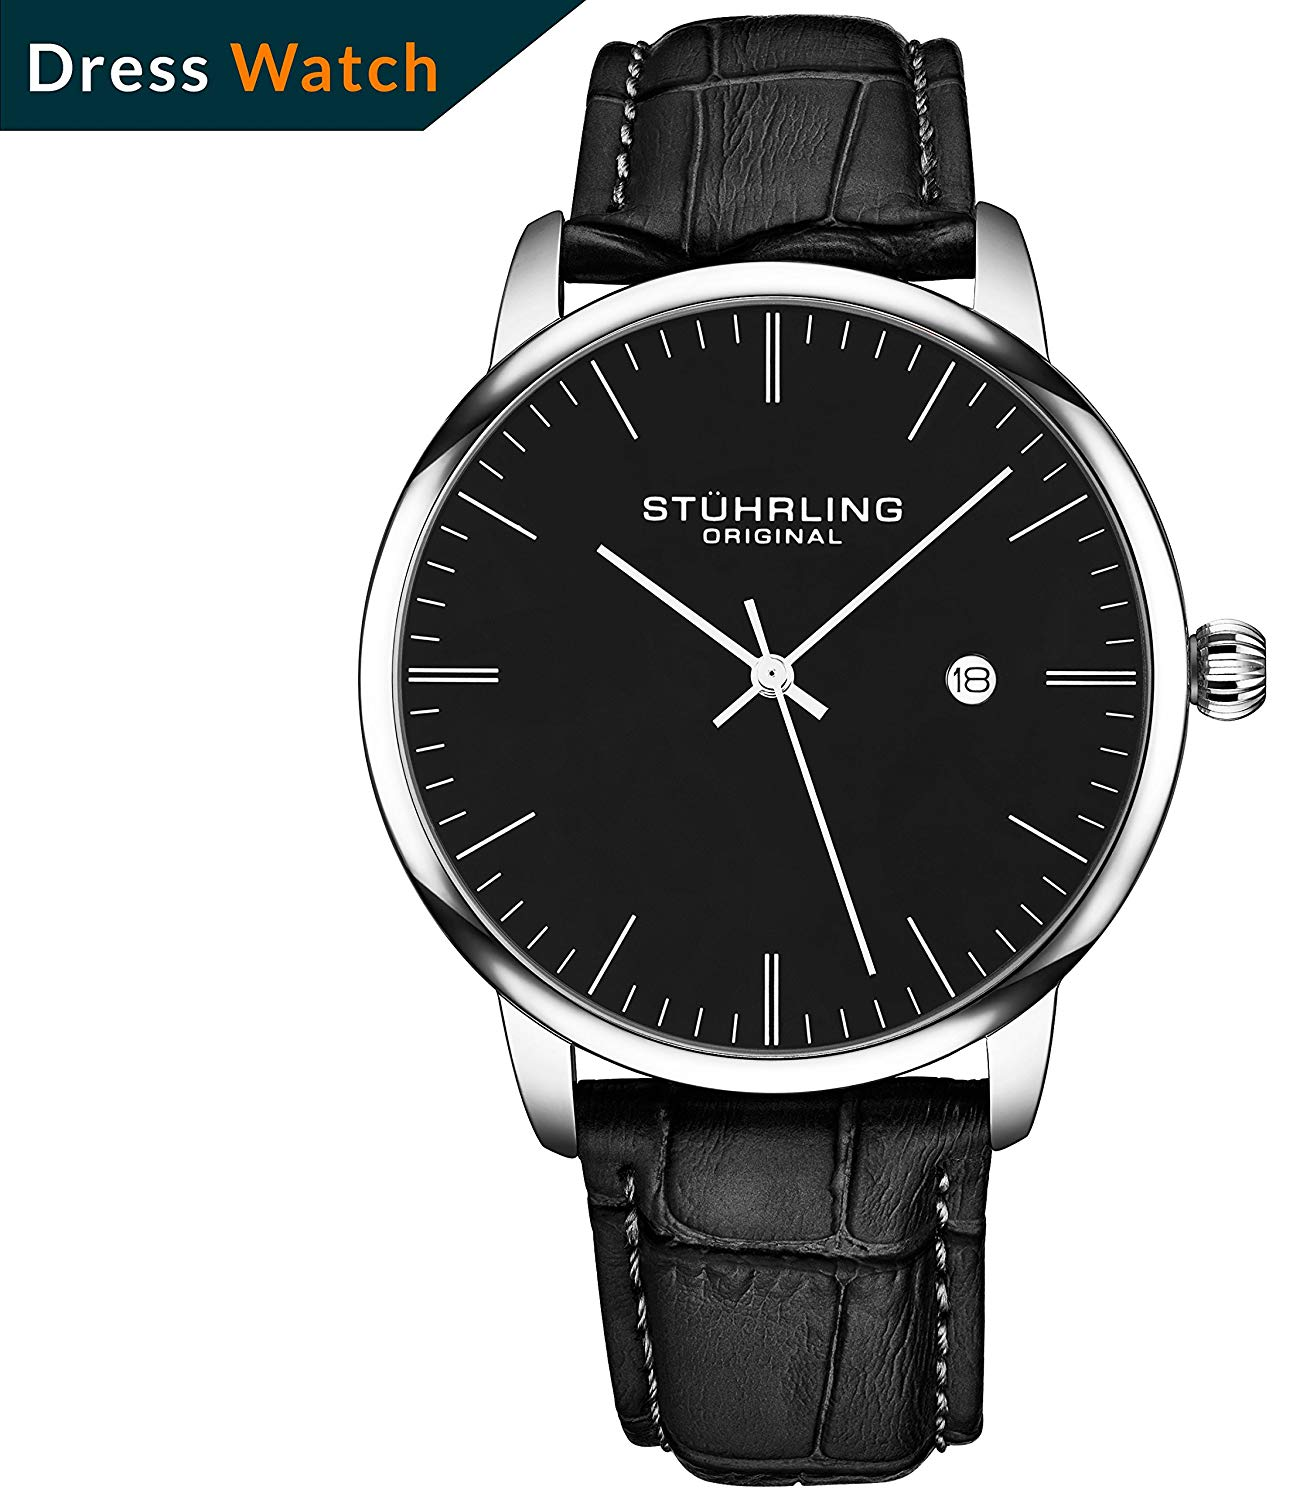 49942792fcc Get Quotations · Stuhrling Original Mens Watch Calfskin Leather Strap -  Dress + Casual Design - Analog Watch Dial